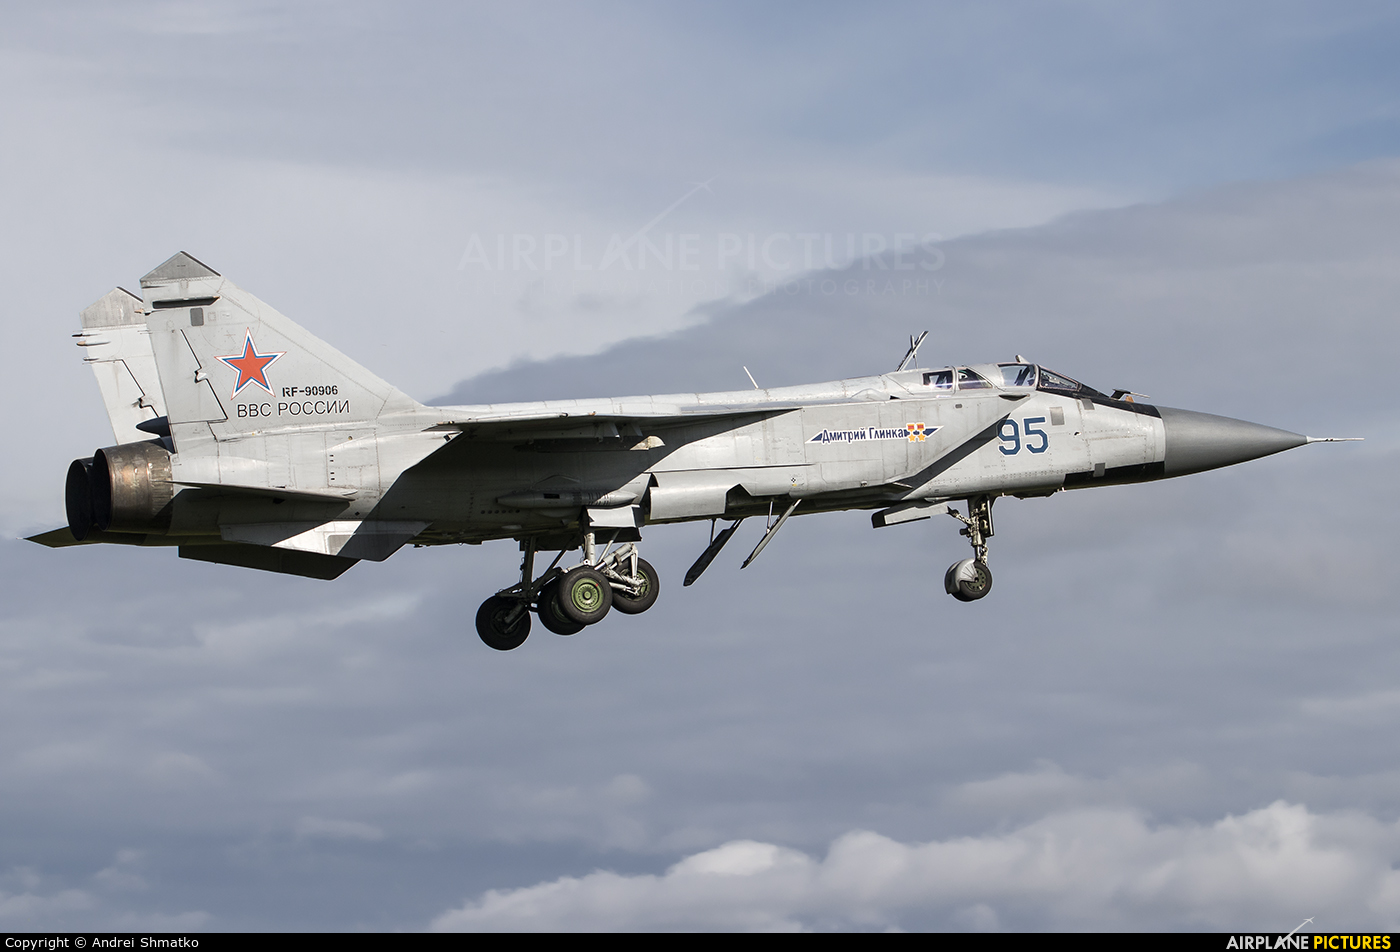 Russia - Air Force RF-90906 aircraft at Off Airport - Russia